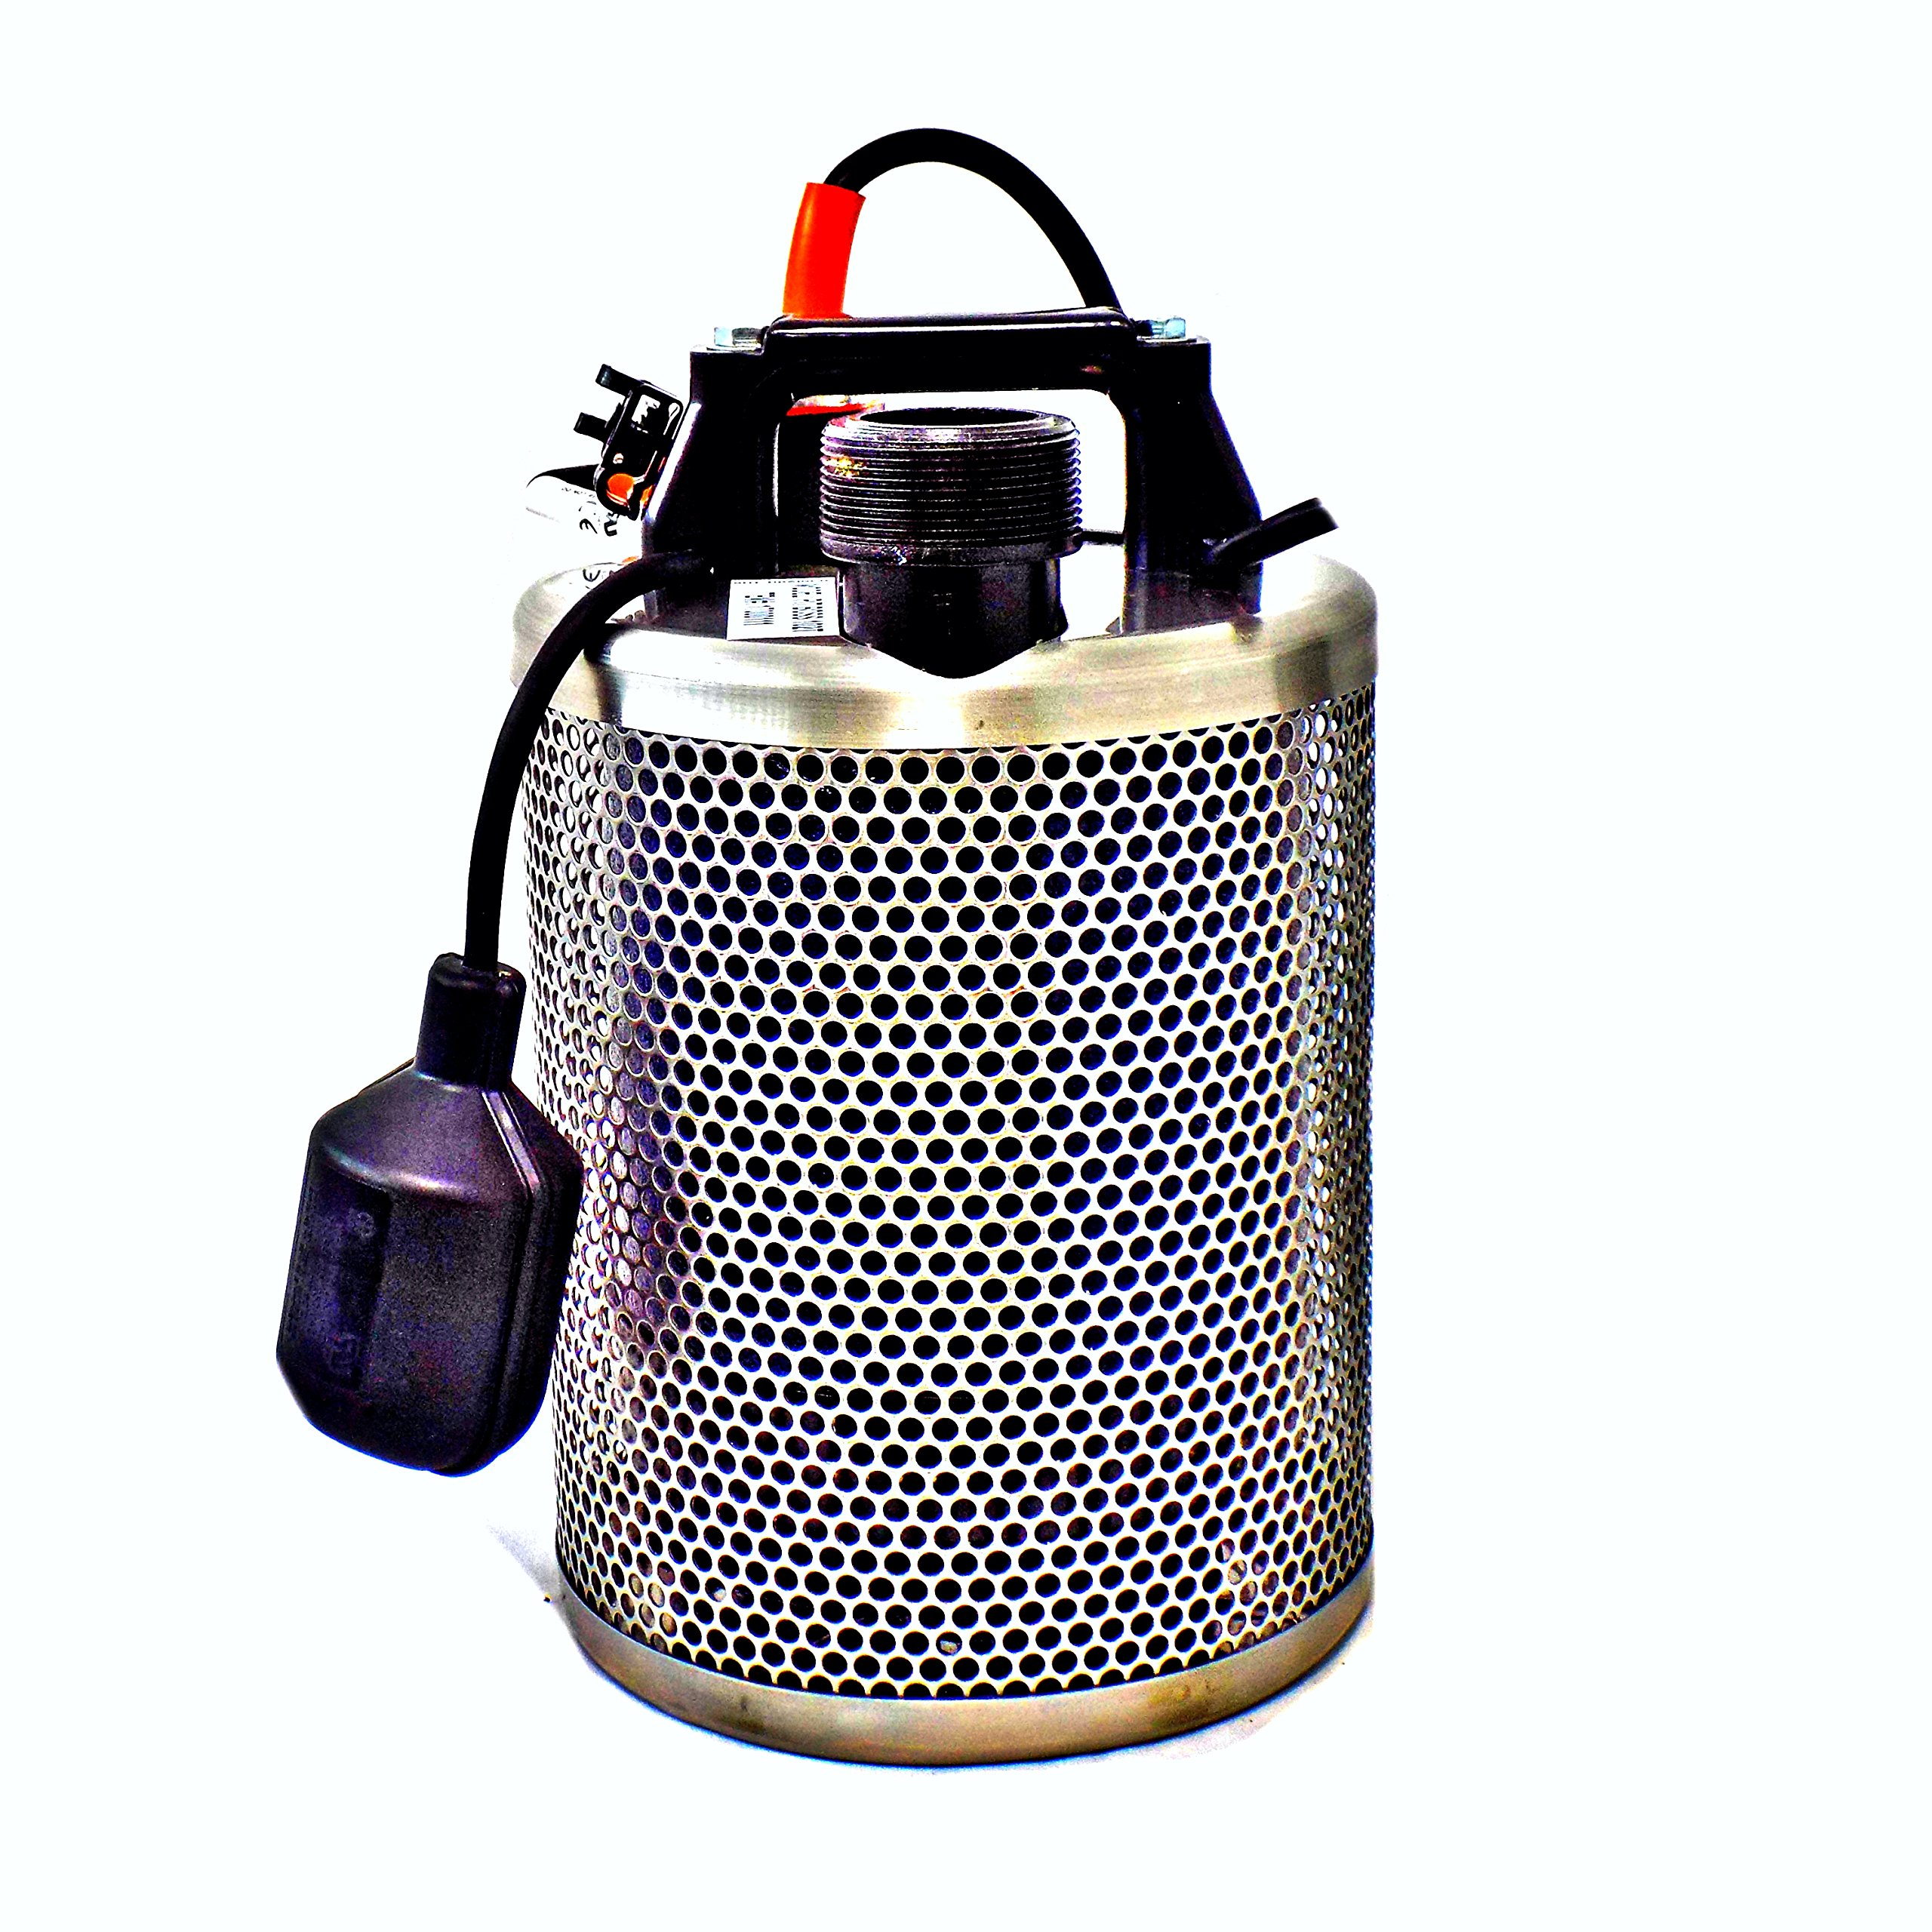 Site Drainer Contractor 102T 1 HP Fully Submersible Non-Clogging Dirty Water Sump Pump (102T)